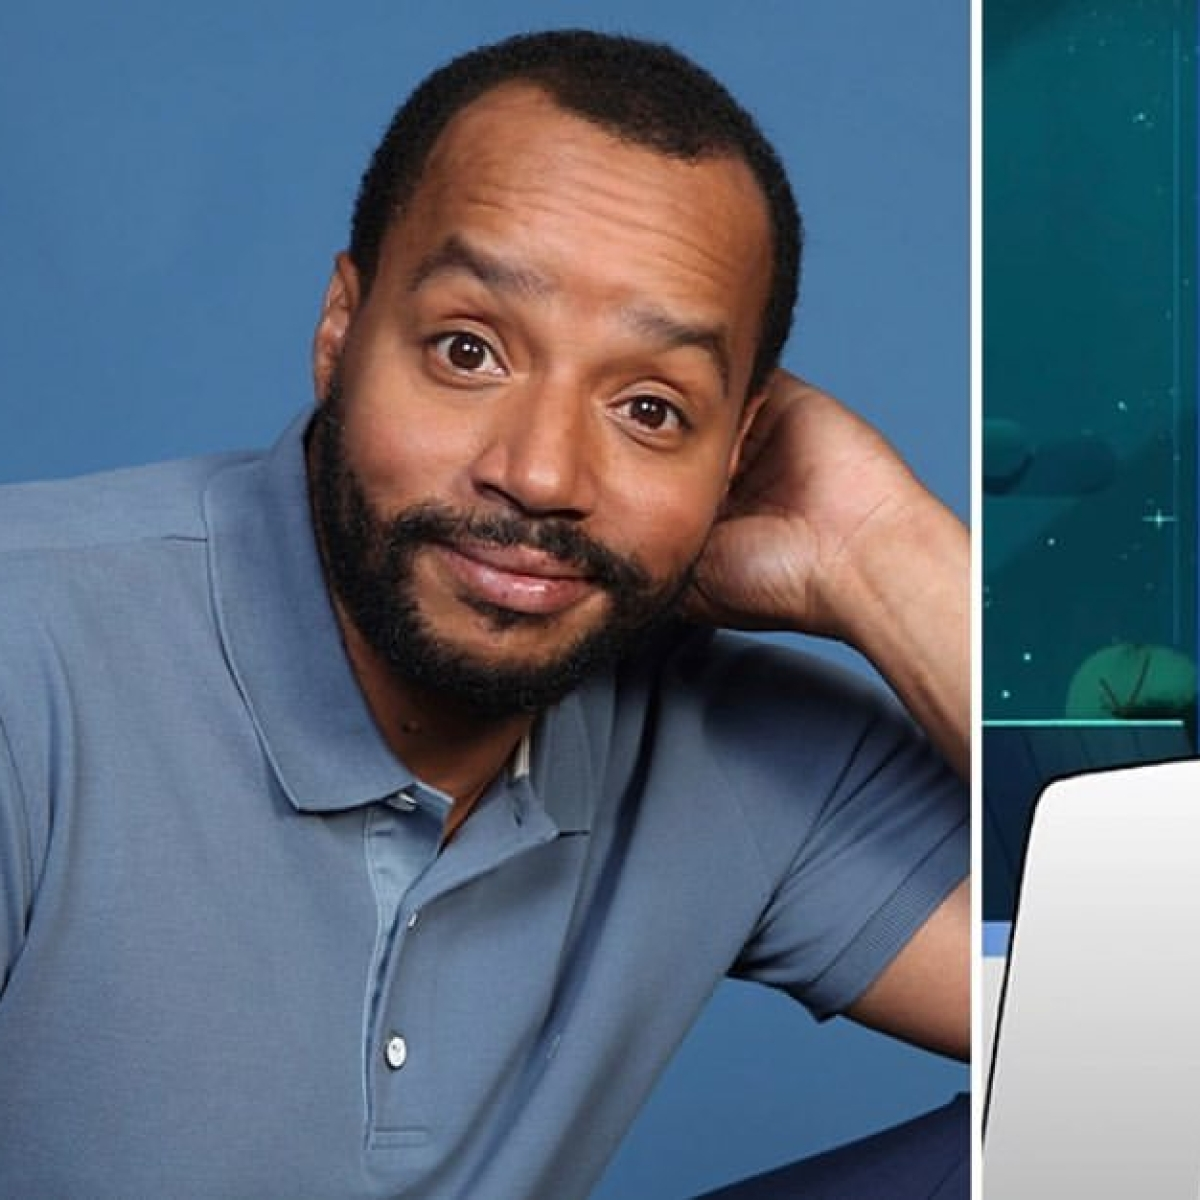 Donald Faison roped in as Professor Utonium in 'Powerpuff Girls' live-action pilot